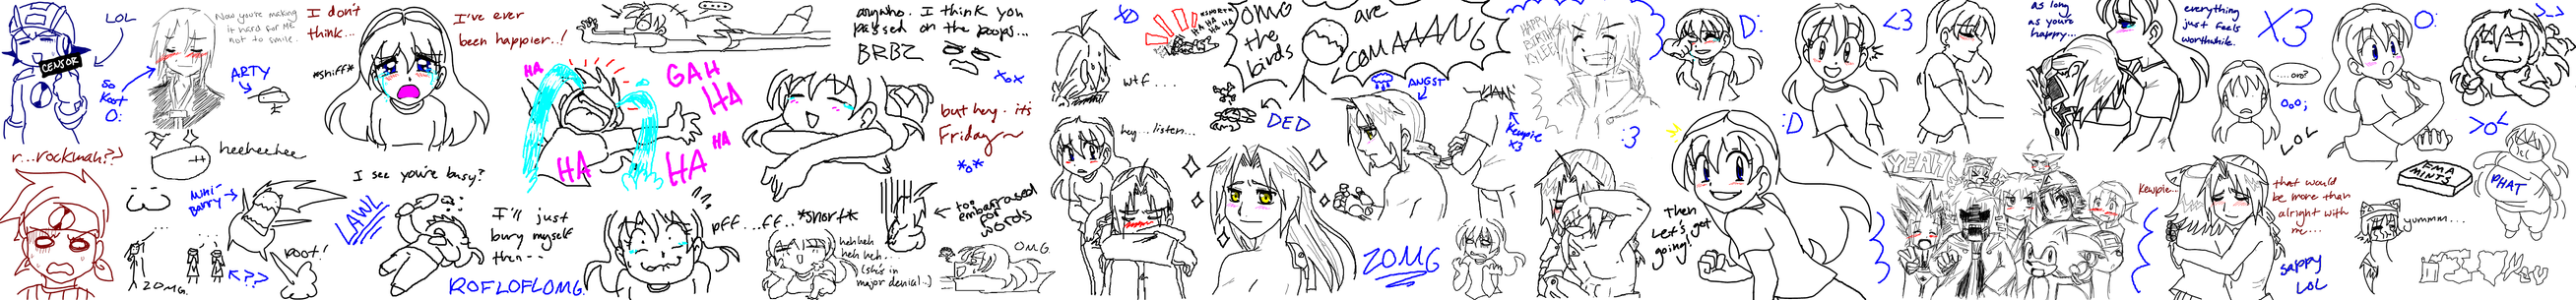 MSN Chat Doodles by SonicRocksMySocks